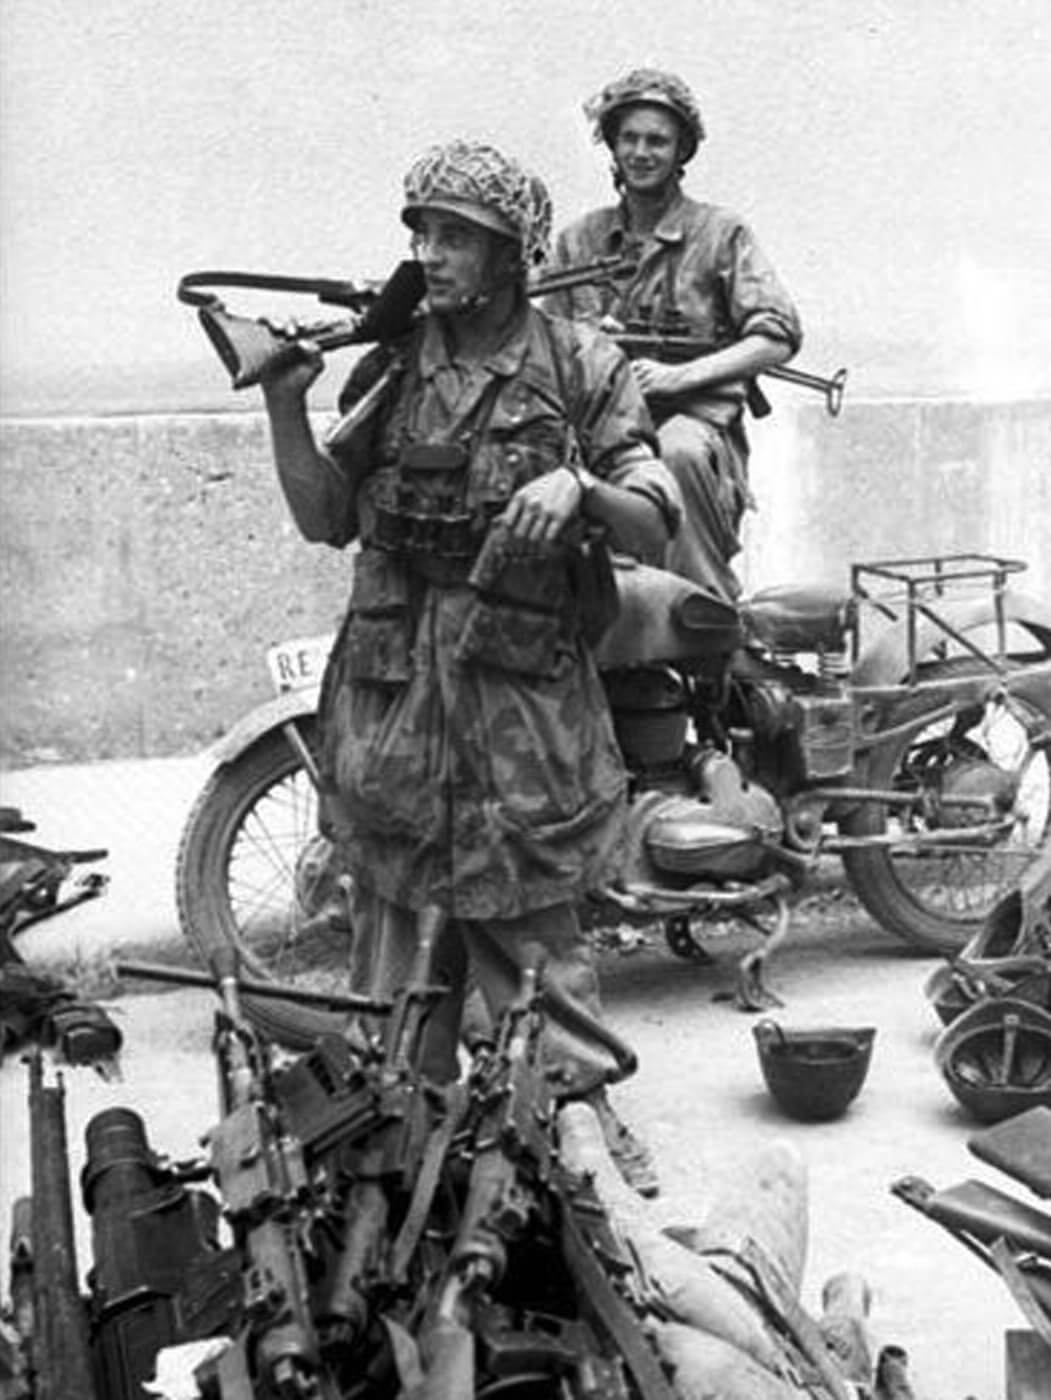 FG42 during Operation Achse